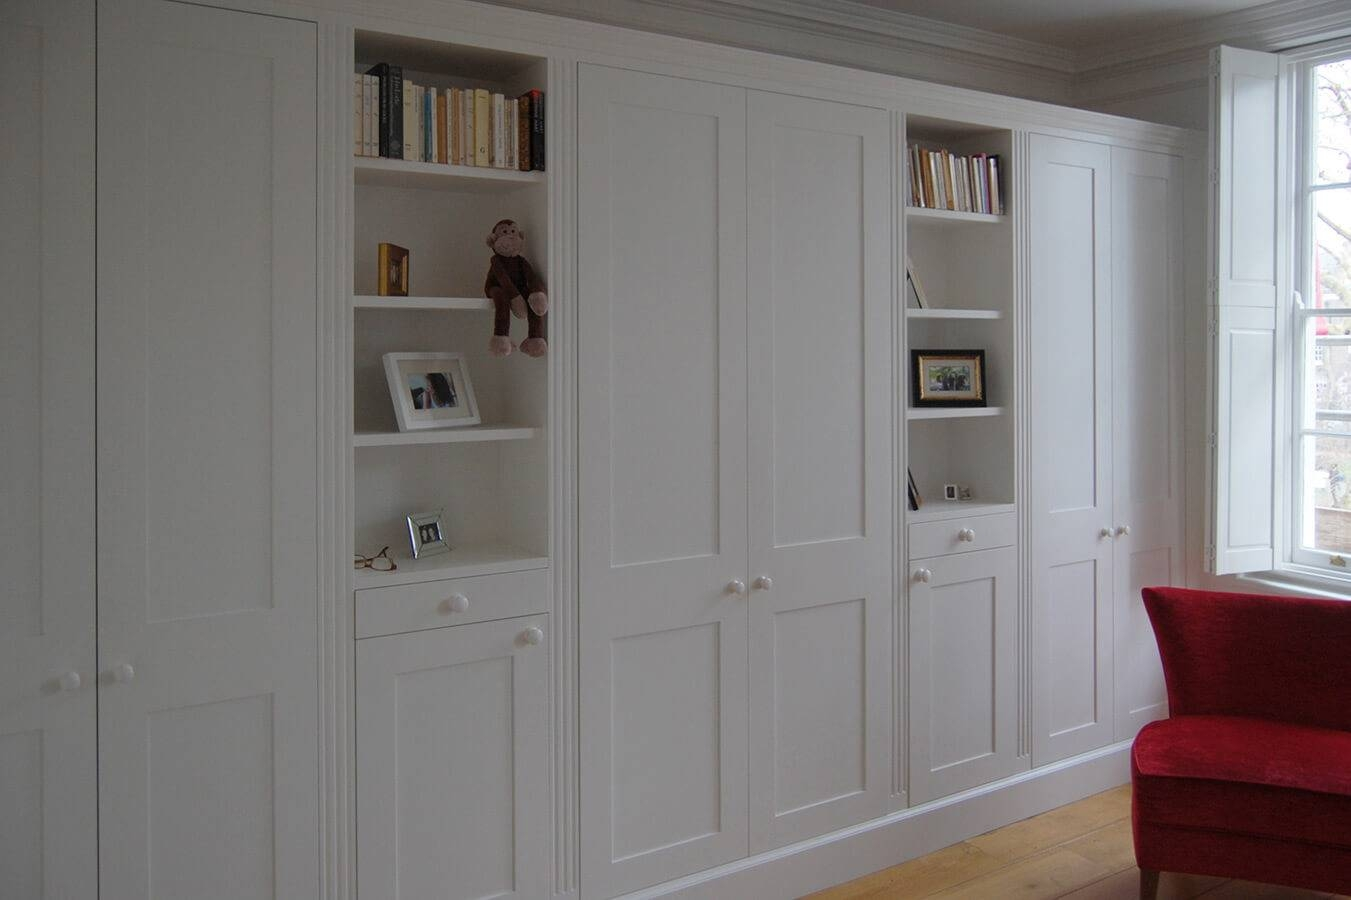 Fitted Bedrooms | Wardrobes, Beds And Chests Of Drawers in Wardrobes With Shelves (Image 11 of 30)